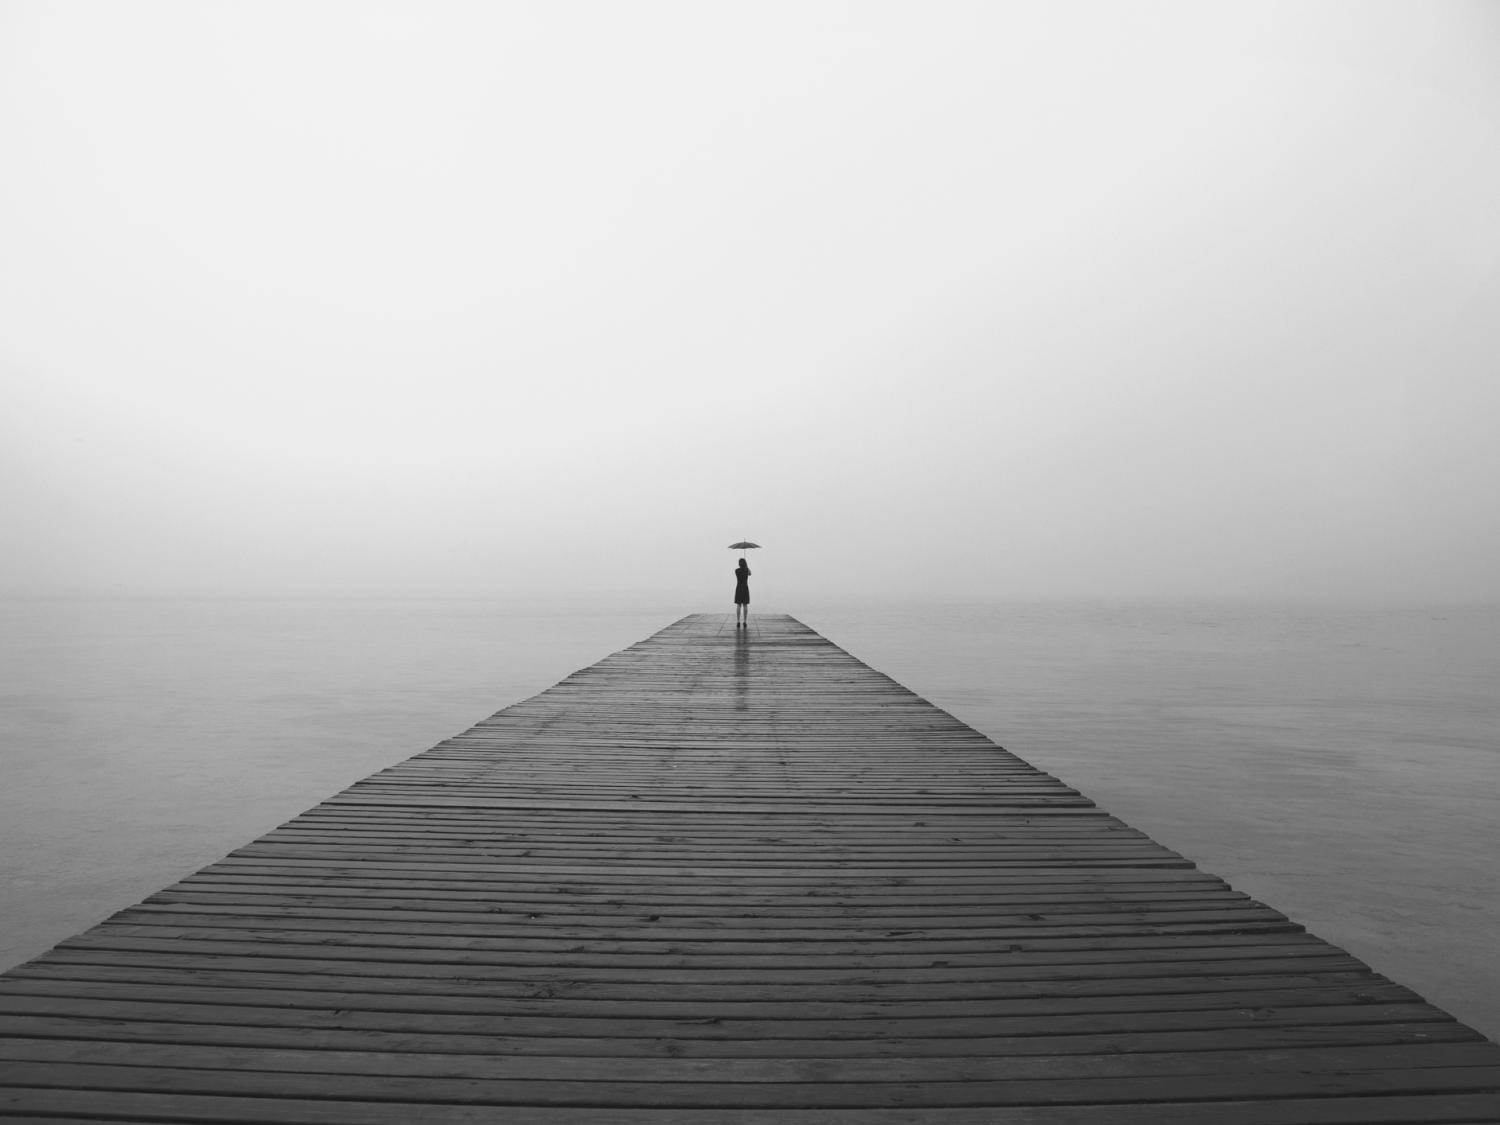 a long peer over water with a very small person at the very end with a black umbrella